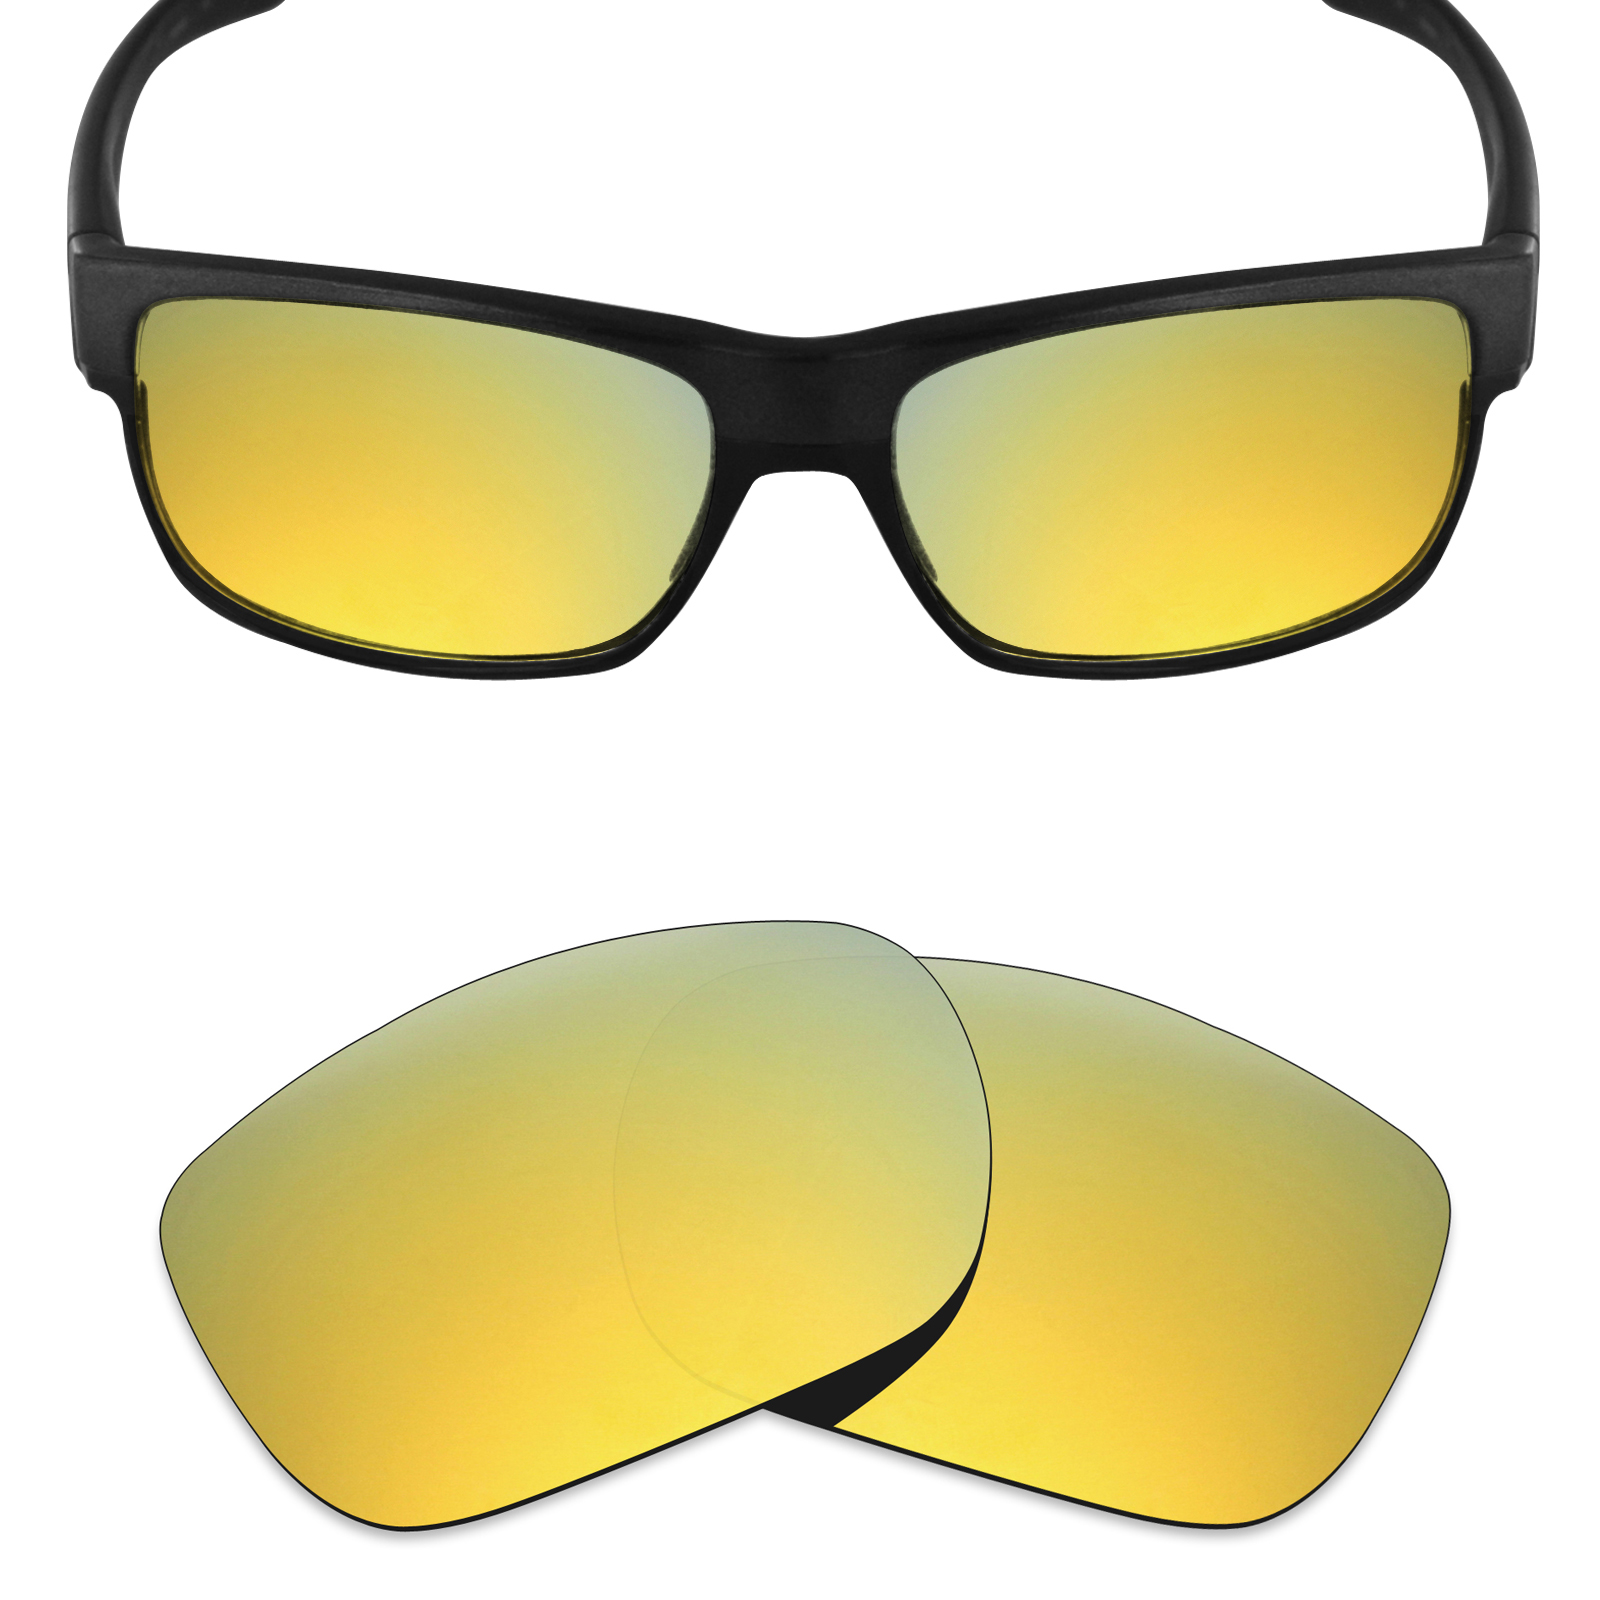 Mryok POLARIZED Replacement Lenses for RB 3025 58mm Sunglasses Option Colors